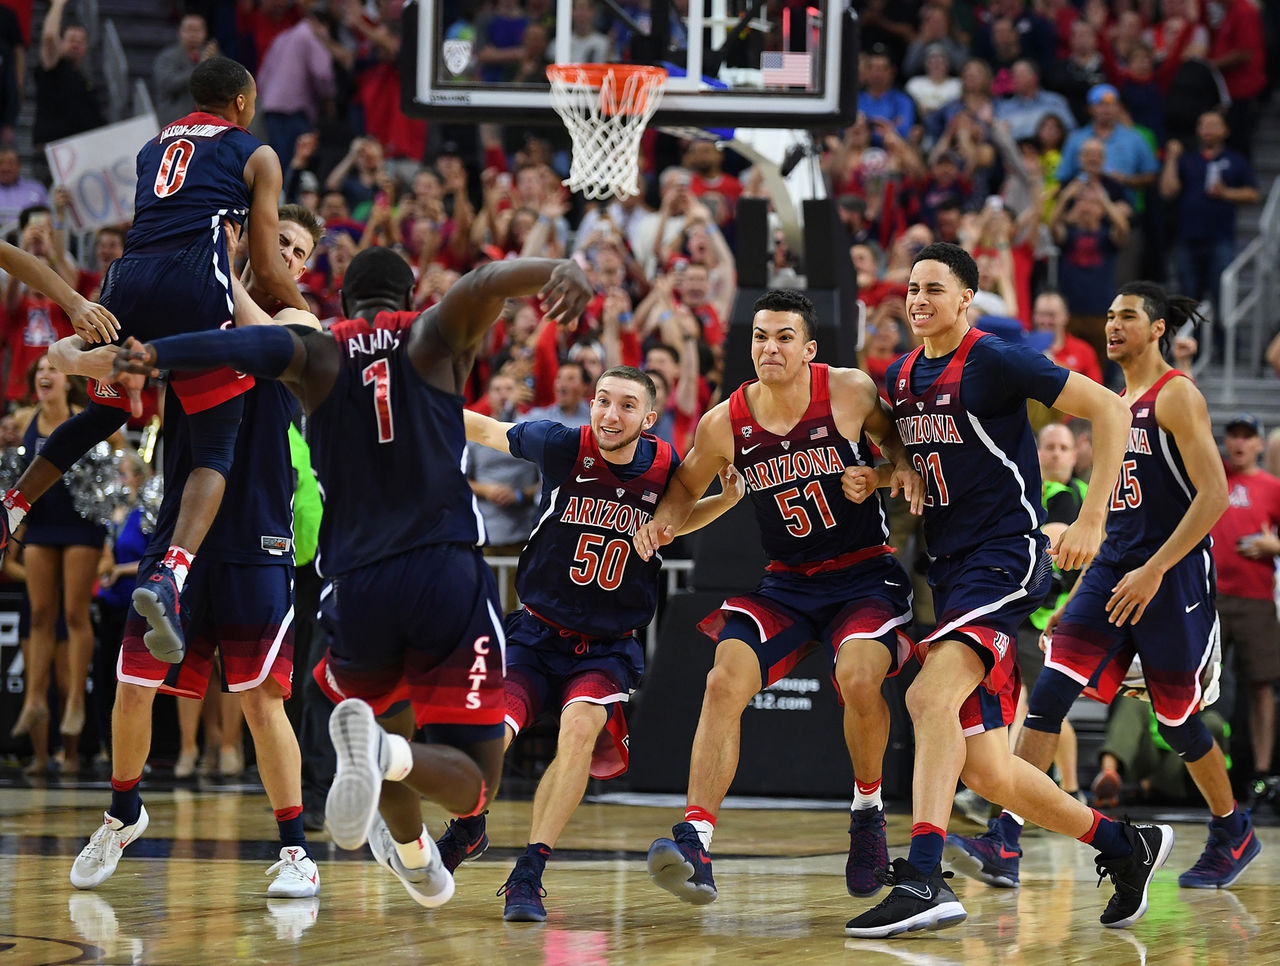 Cropped 2017 03 12t064942z 2077018613 nocid rtrmadp 3 ncaa basketball pac 12 conference championship arizona vs oregon